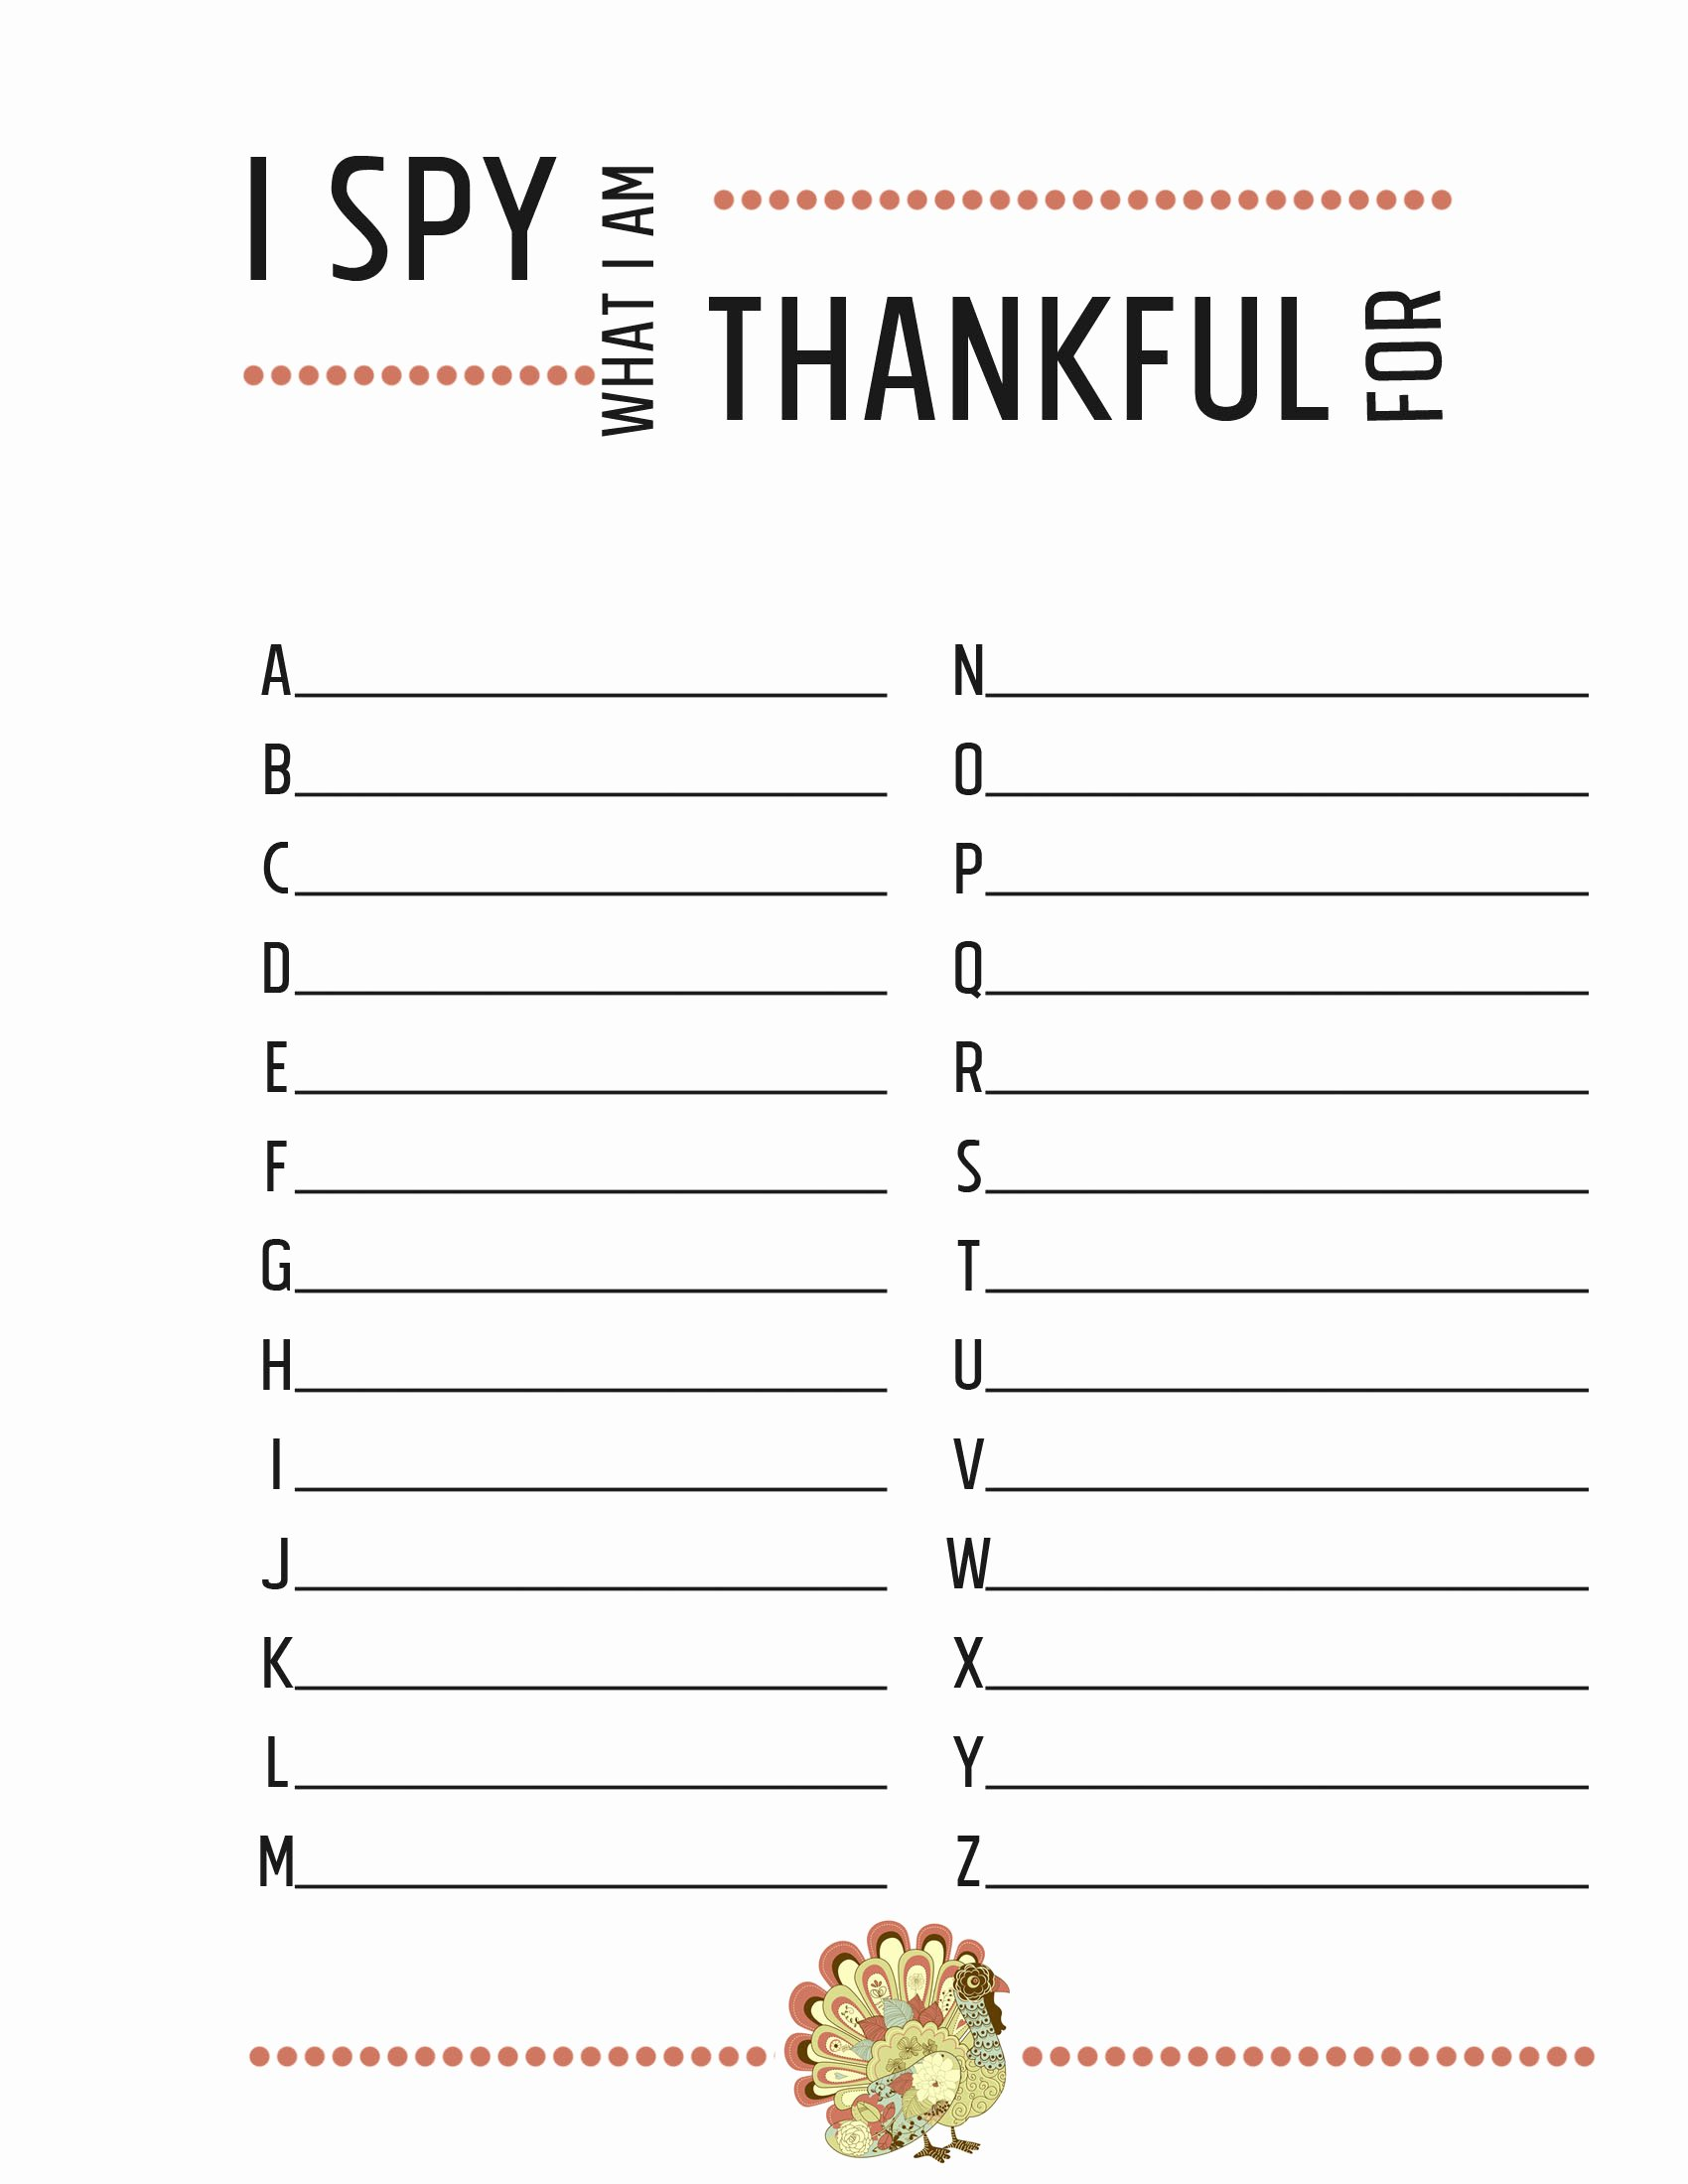 Thankful Worksheets for Preschoolers Awesome Thanksgiving Worksheets Free Printables Jessicalynette